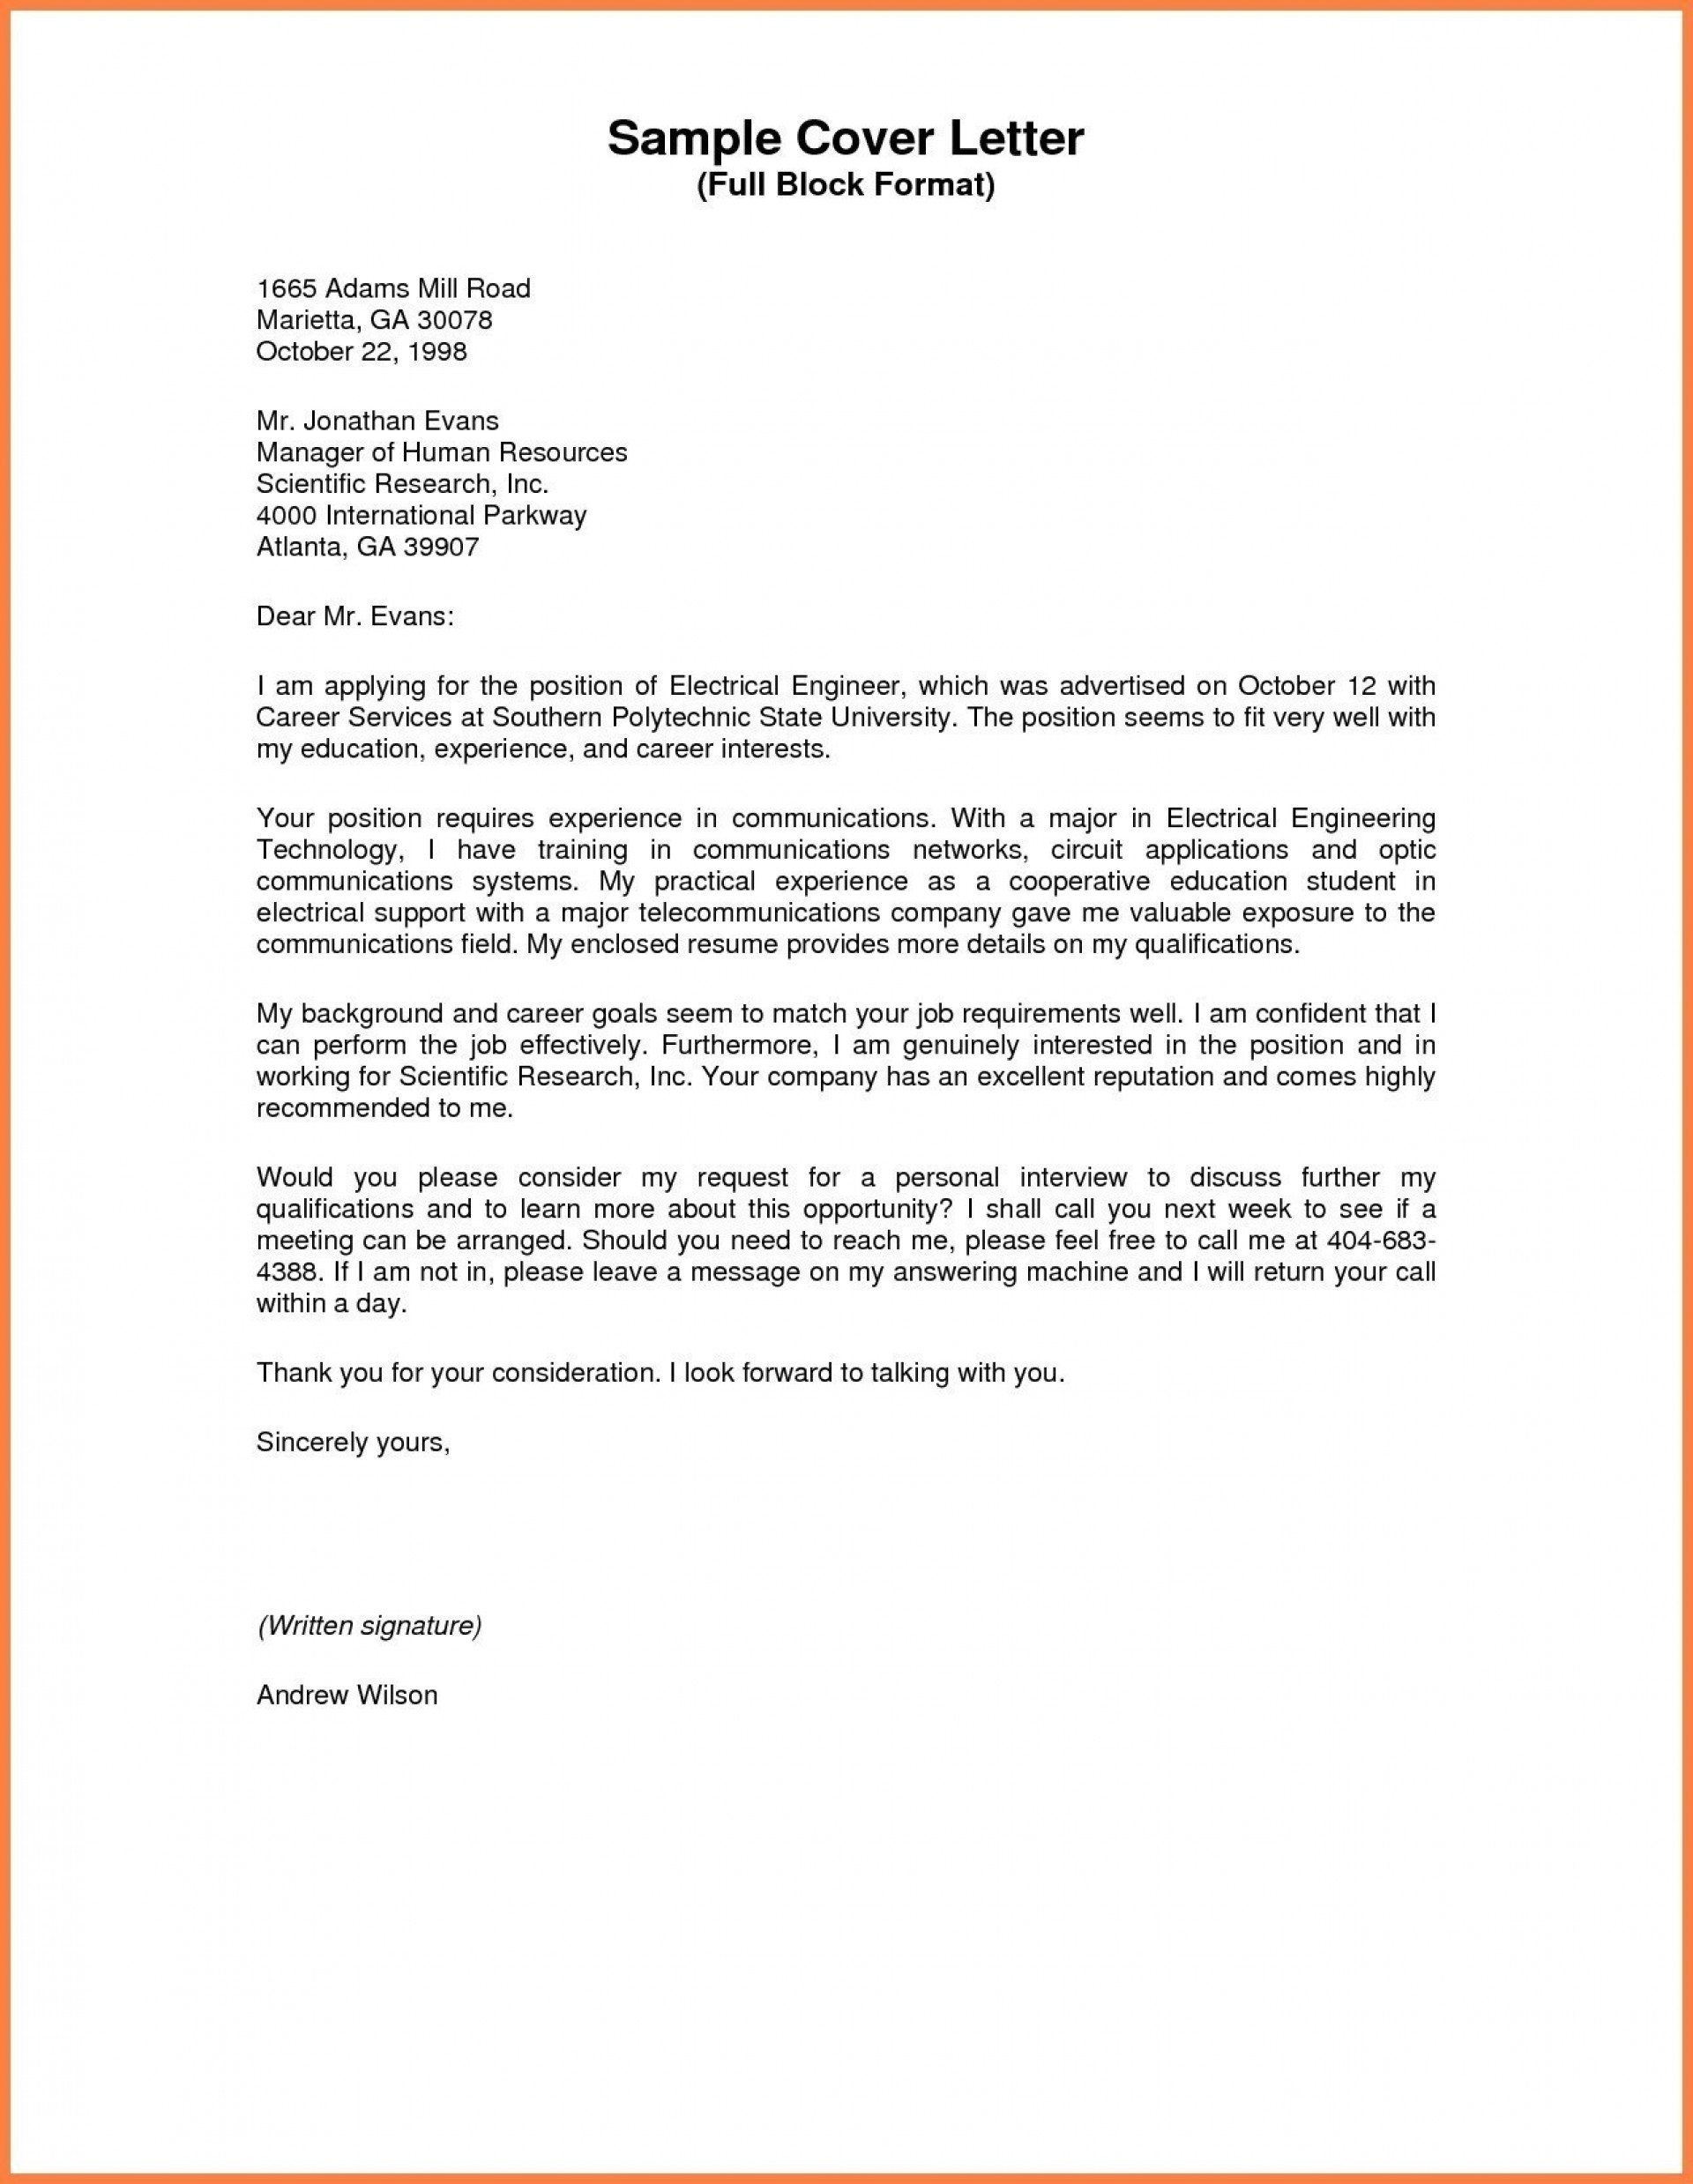 003 Business Letter Sample Full Block Valid Style Format Standard Of Research Awful Paper 1920